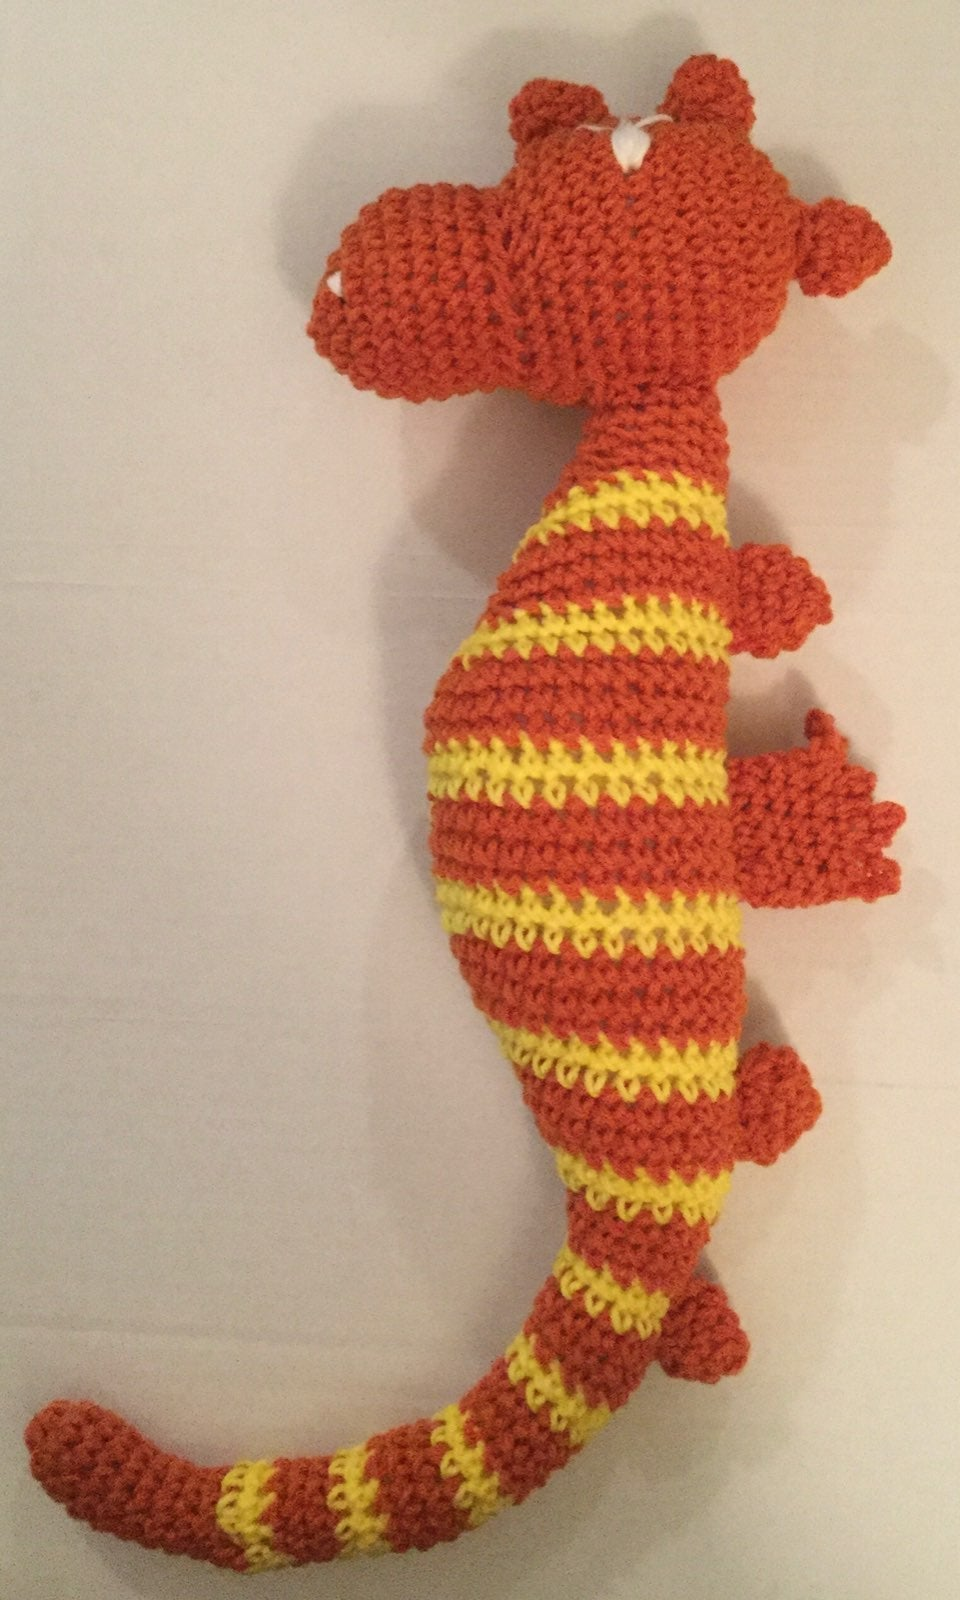 Crocheted sea horse, orange and yellow